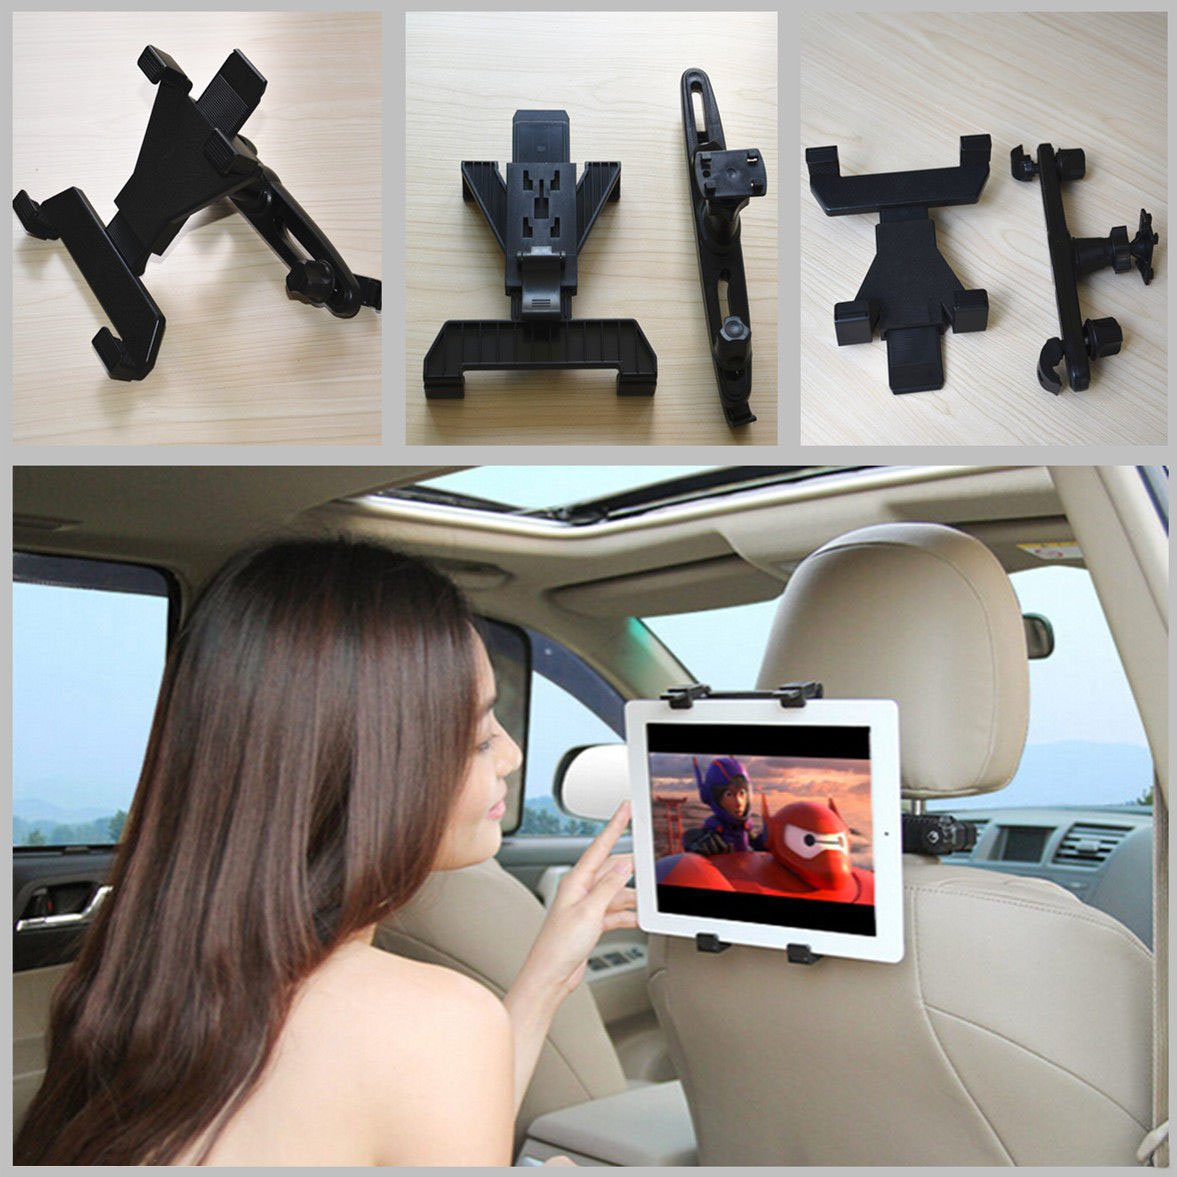 7''-10.2'' Ratating Car Rotatable Bracket Seat Headrest Holder Mount For IPad Air by ganesha2015